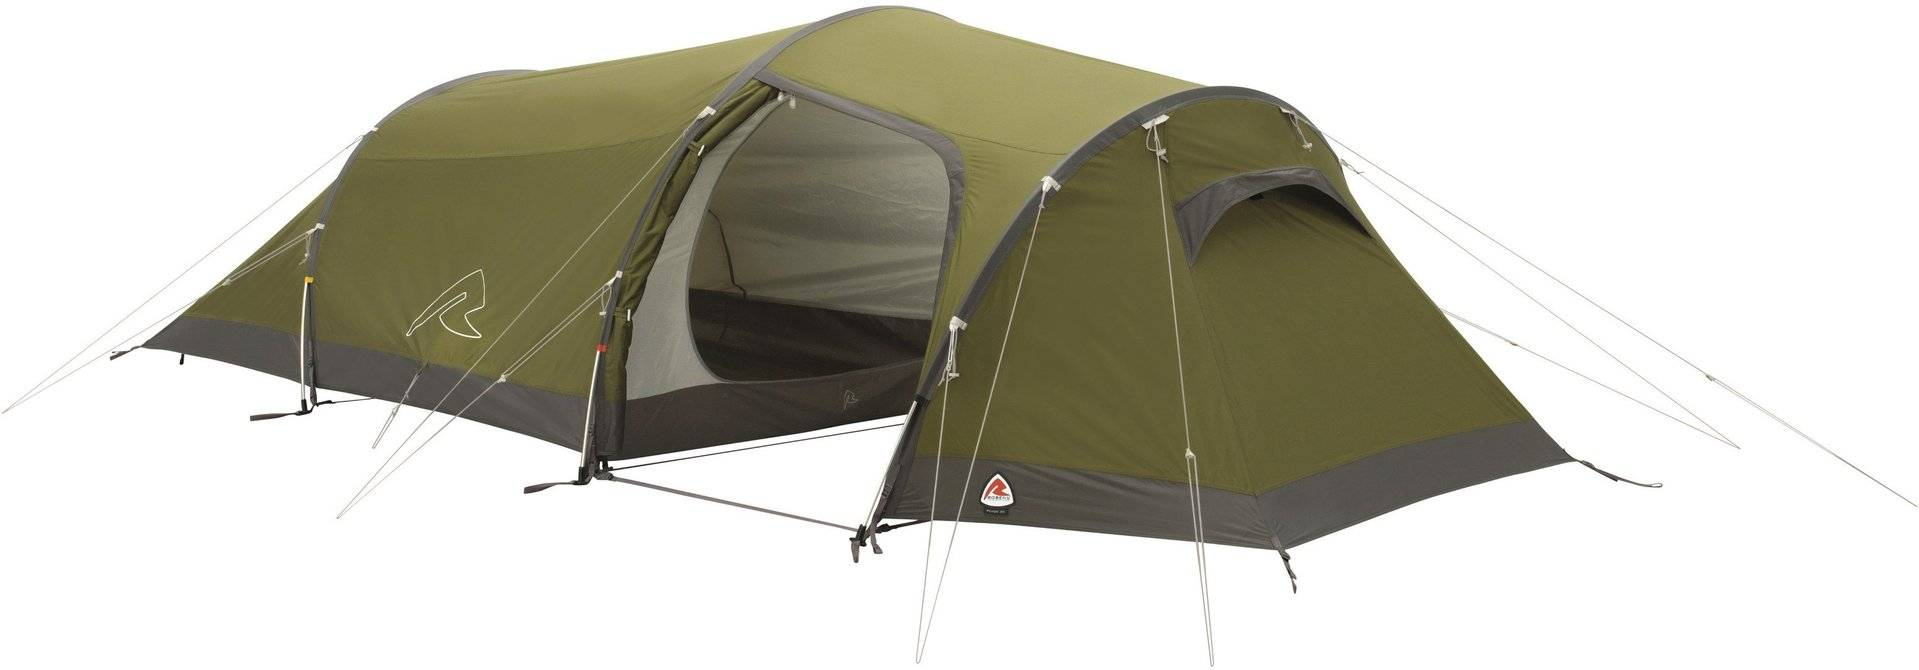 Robens Voyager 3EX Tent Grey Green One Size